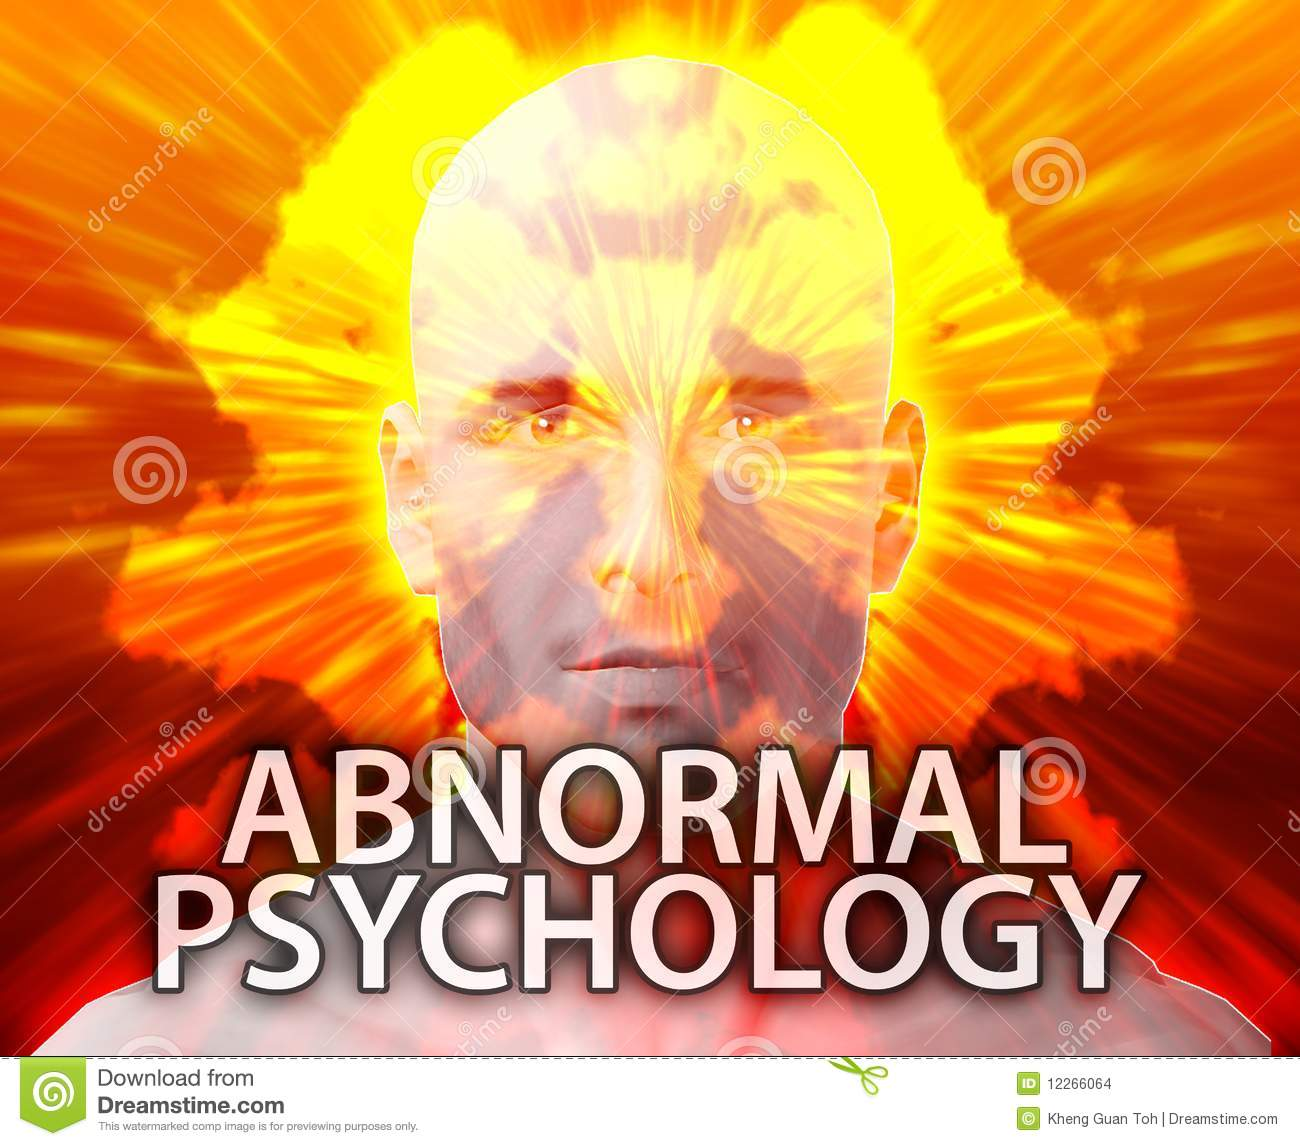 abnormal psychology history A abnormal psychology is the field devoted to the scientific study of abnormal behavior to describe, predict, explain, and change abnormal patterns of functioning b workers in the field may be clinical scientists (researchers) or clinical practitioners (thera.